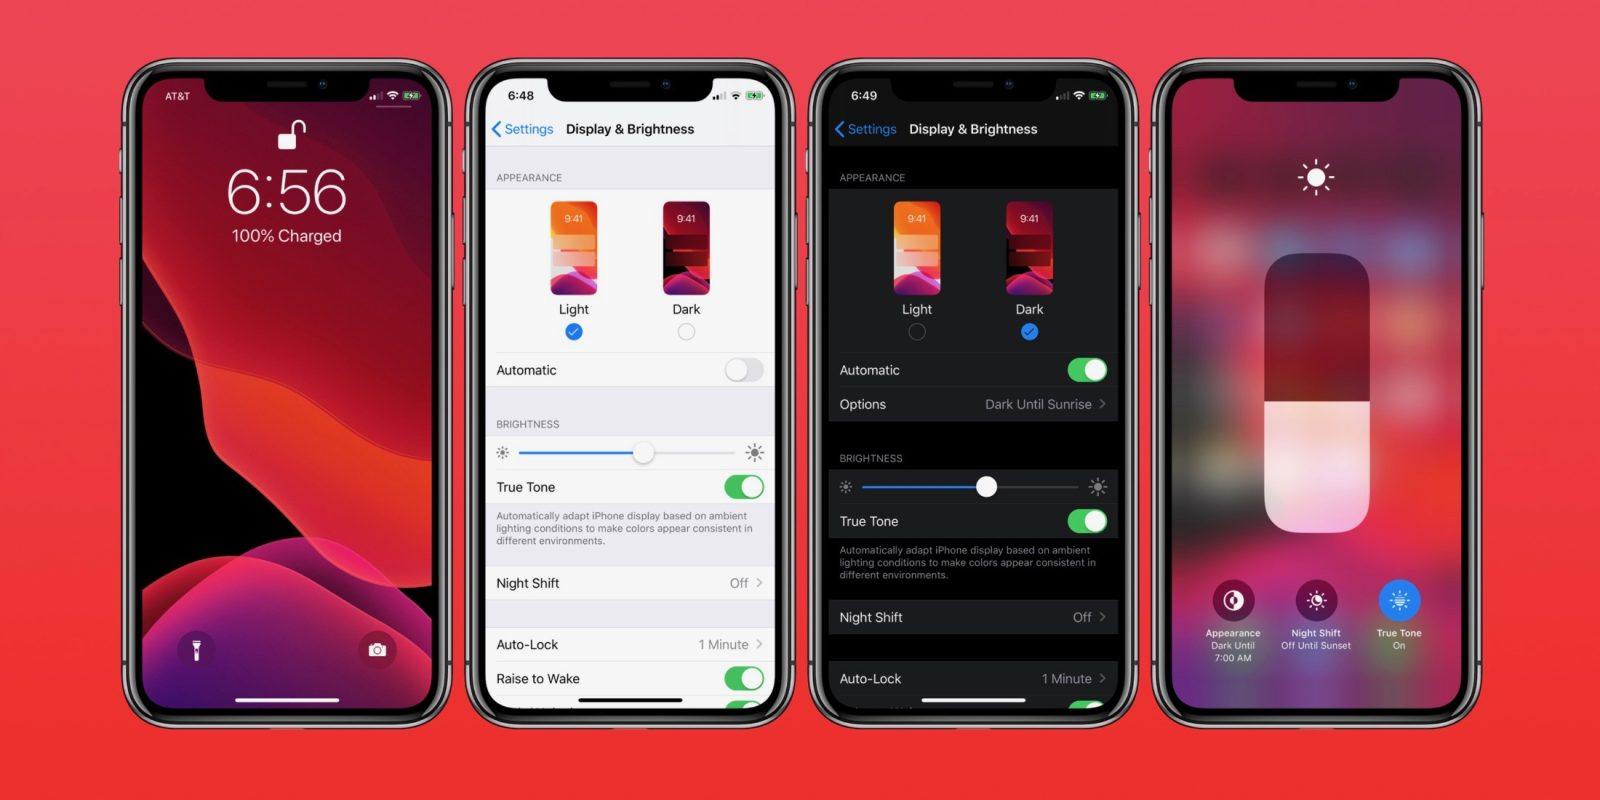 4 iphone screens showing the dark mode option